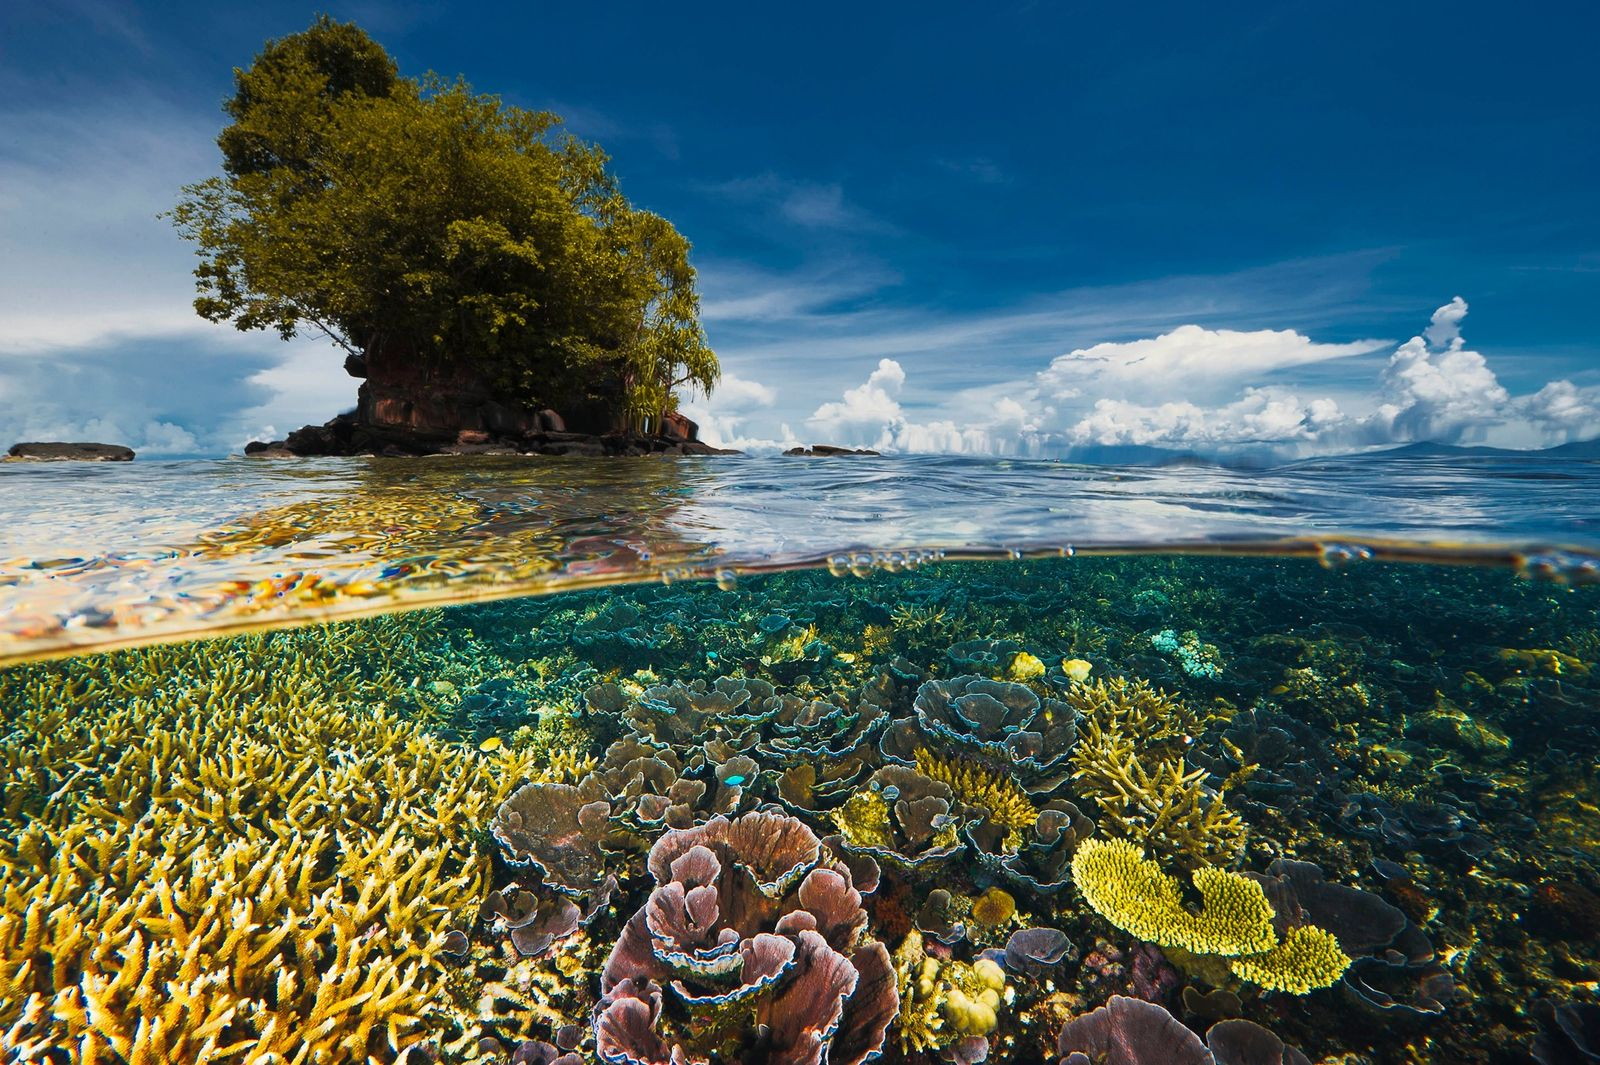 The world missed a critical deadline to safeguard biodiversity, UN report says